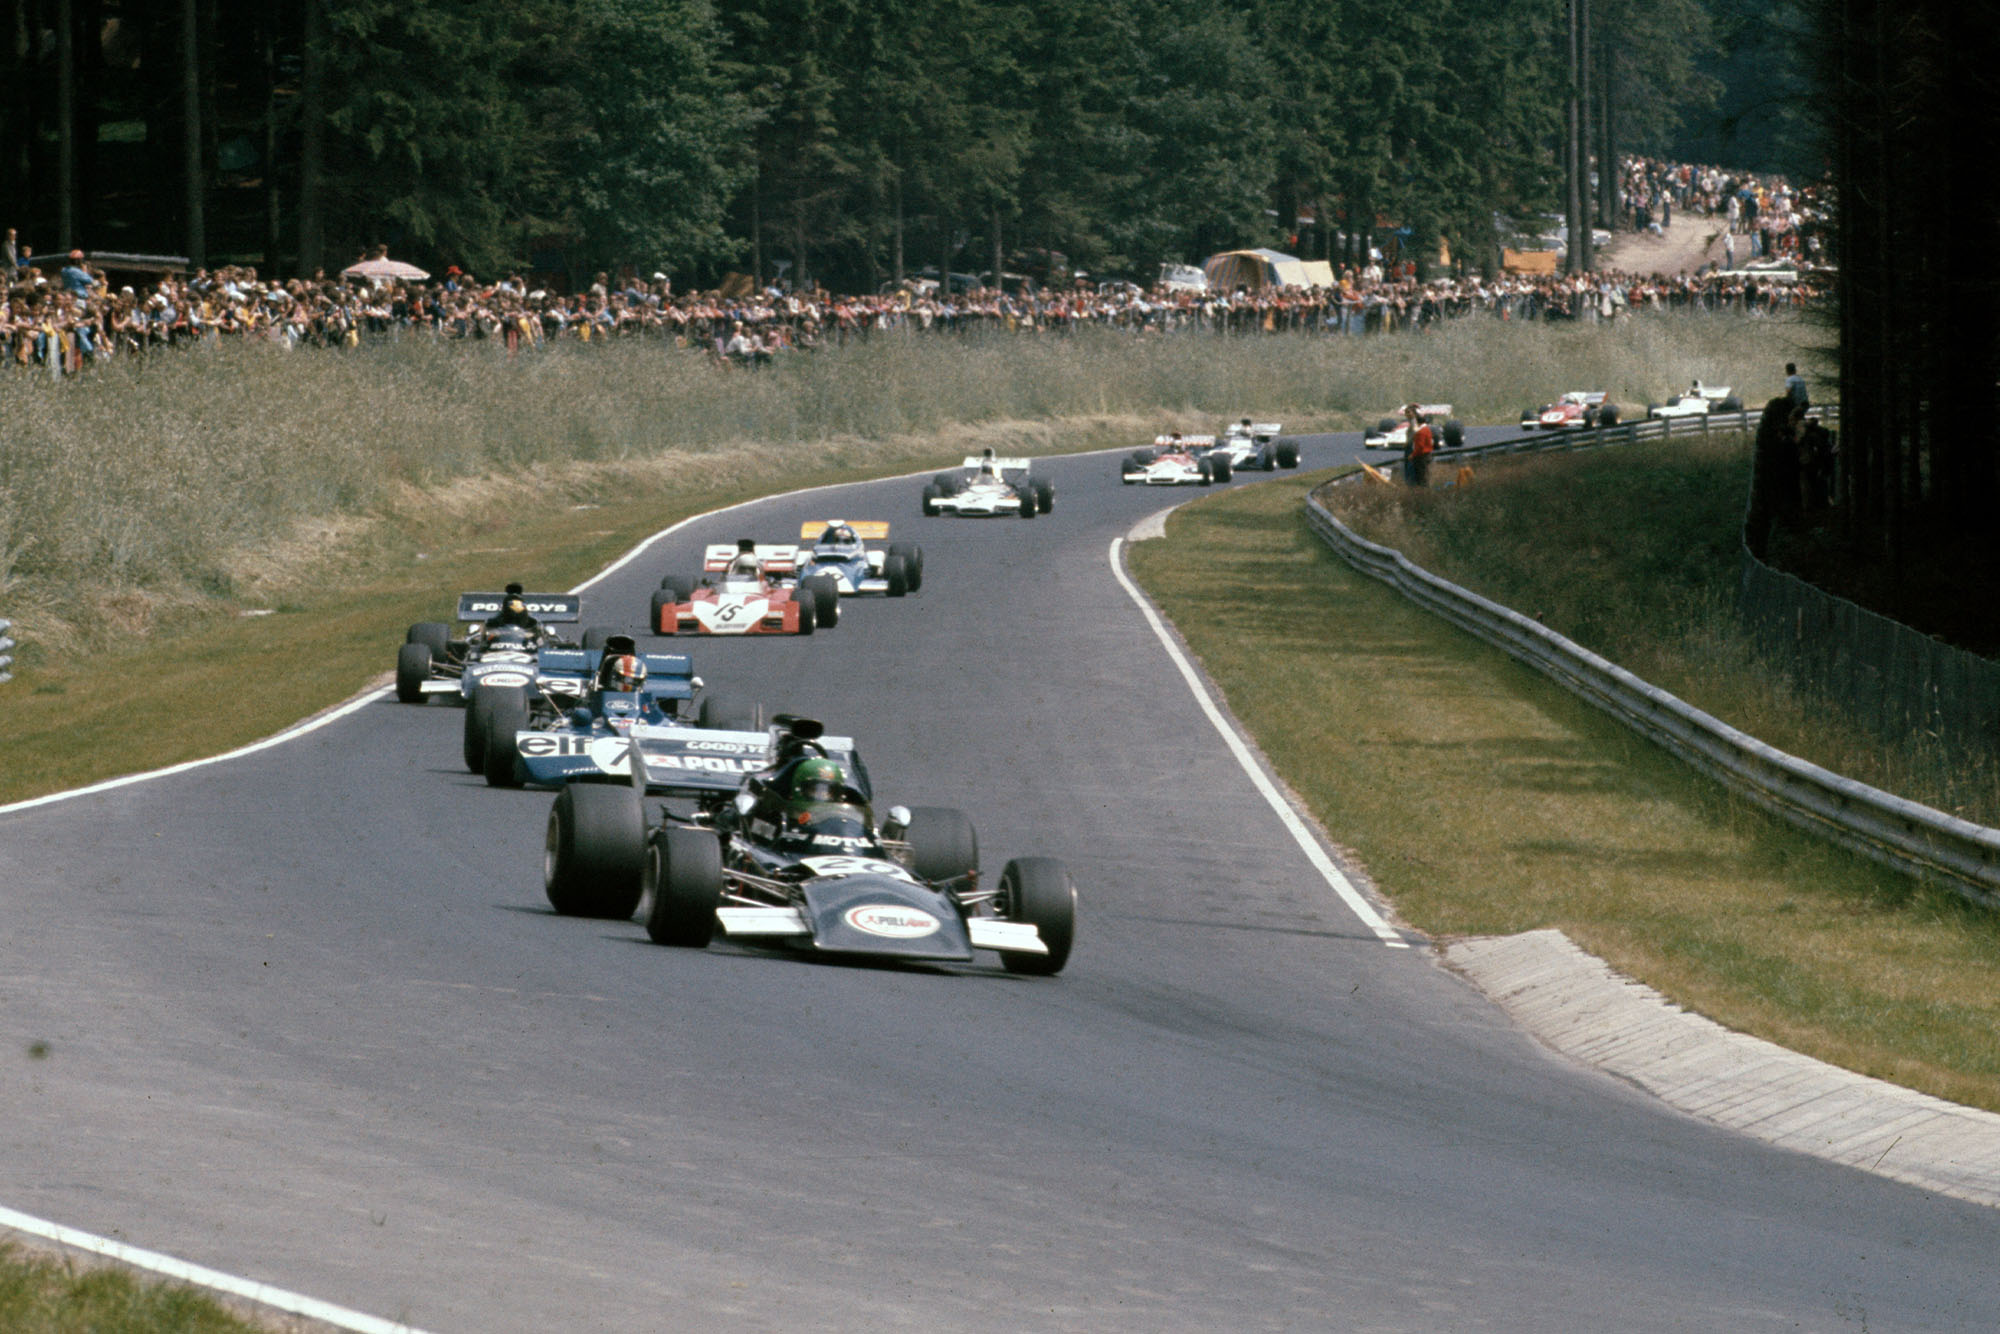 March's Henri Pescarolo leads the midfield battle at the 1972 German Grand Prix, Nurburgring.